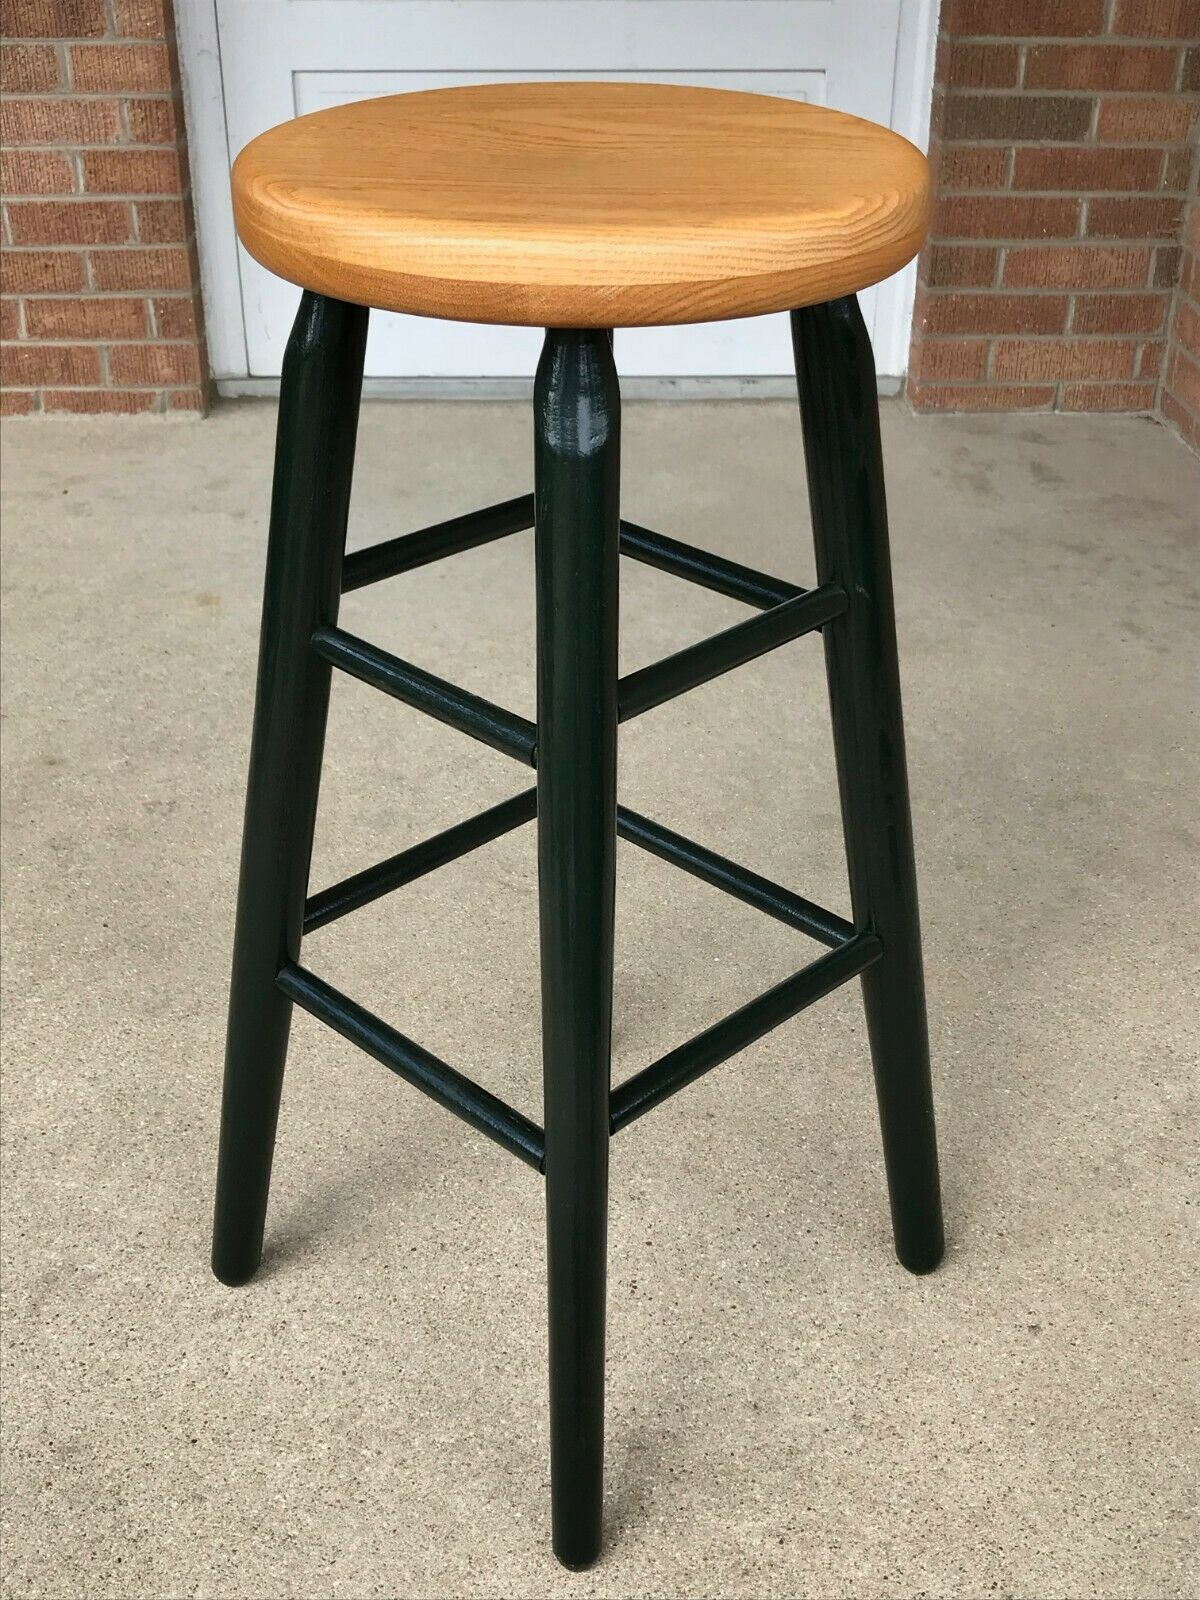 Fusion Living Mustard Yellow Plastic Bar Stool With Beech Wood Legs For Sale Online Ebay